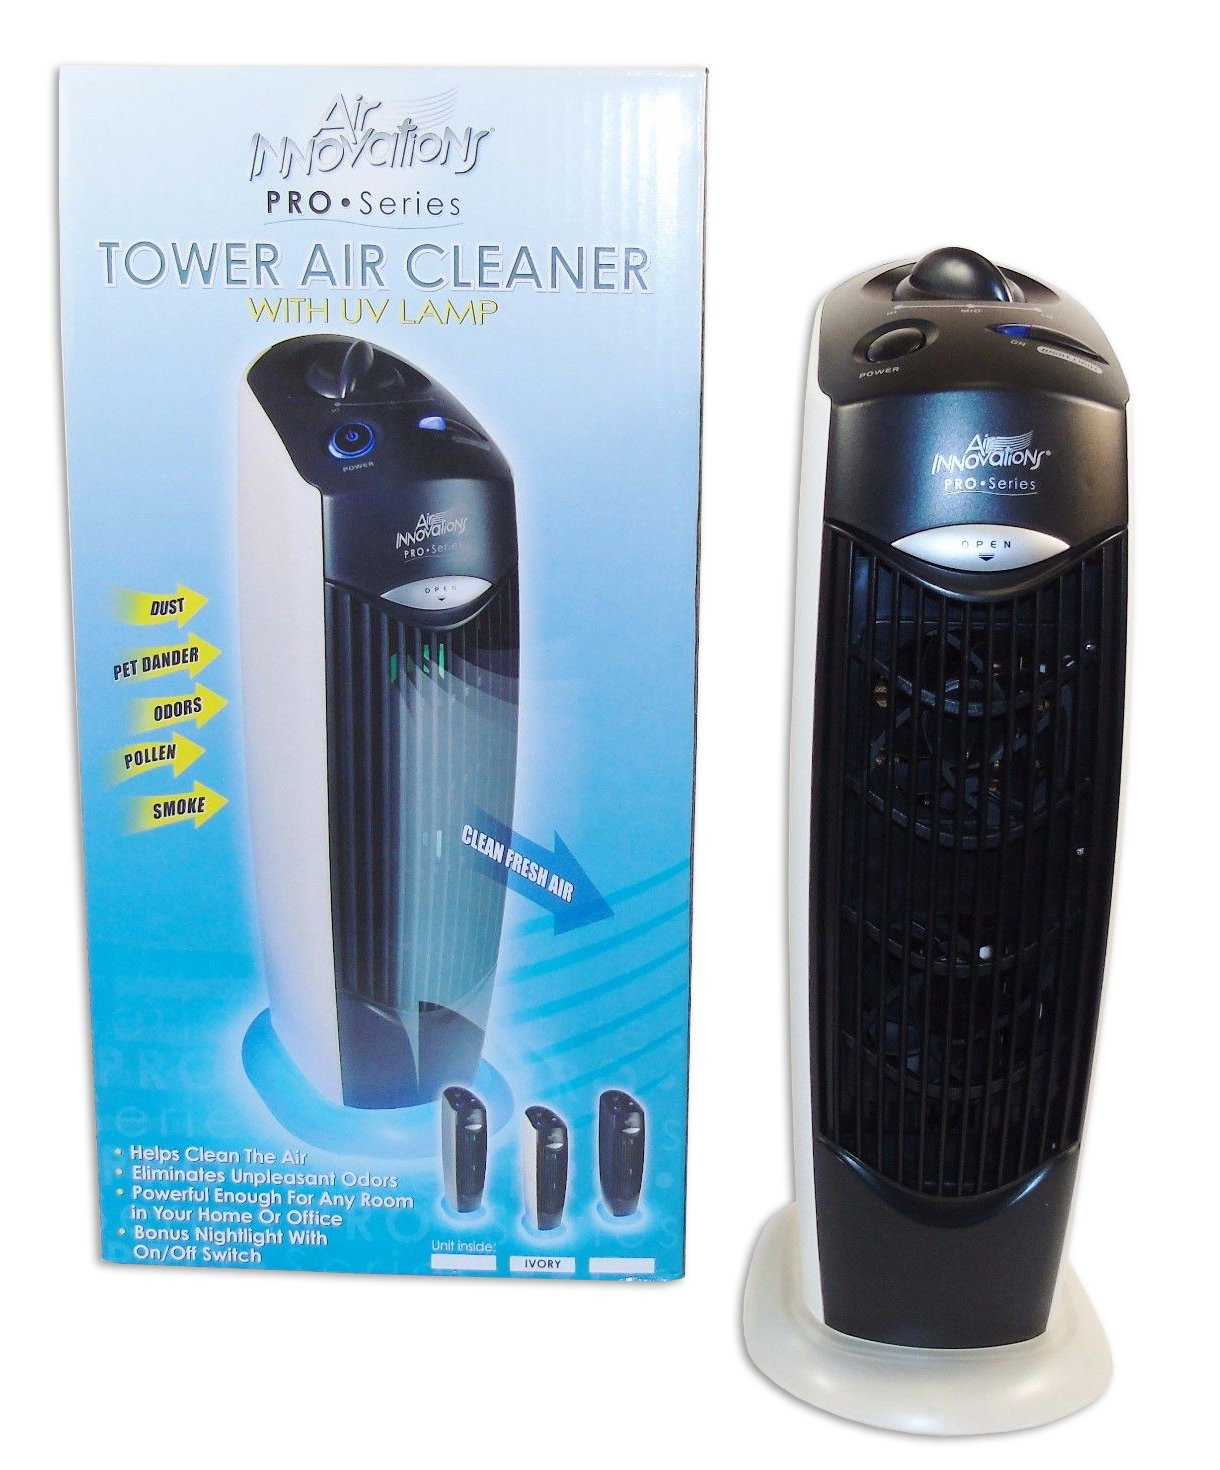 Amazon.com: Tower Air Cleaner with UV Lamp - Air Innovations Pro ...